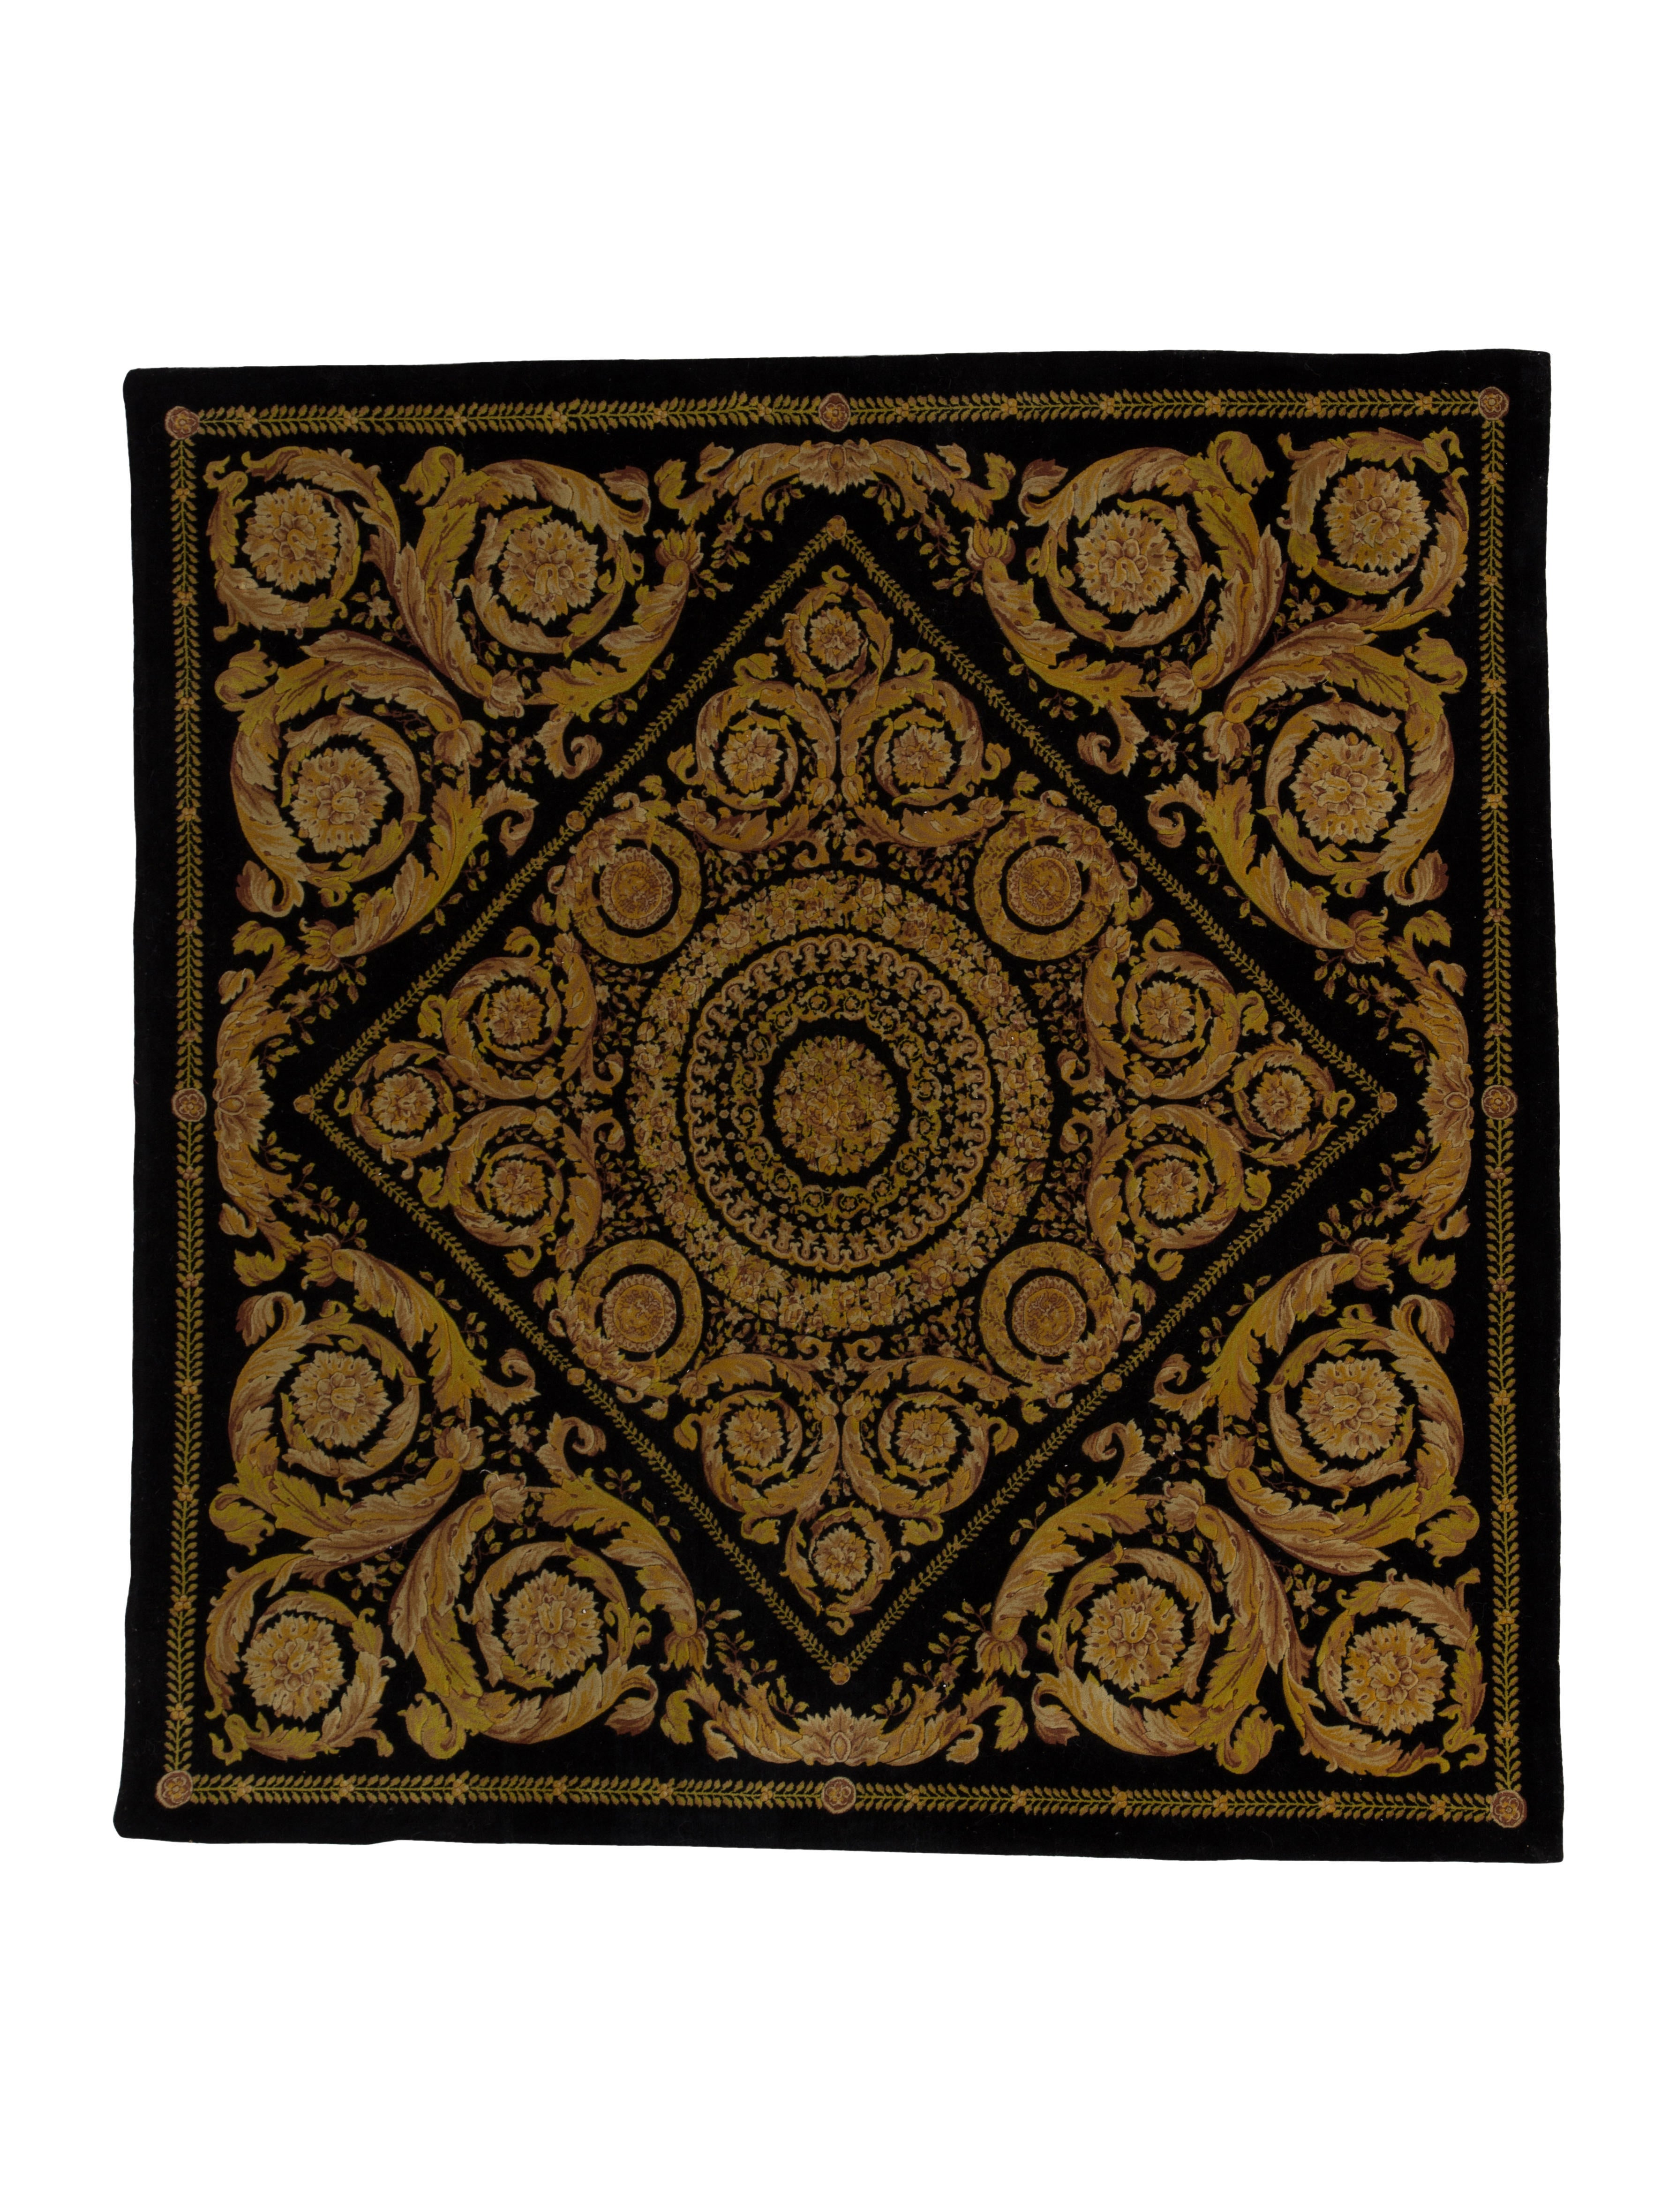 Square Foyer Rug : Gianni versace barocco entryway rug quot rugs